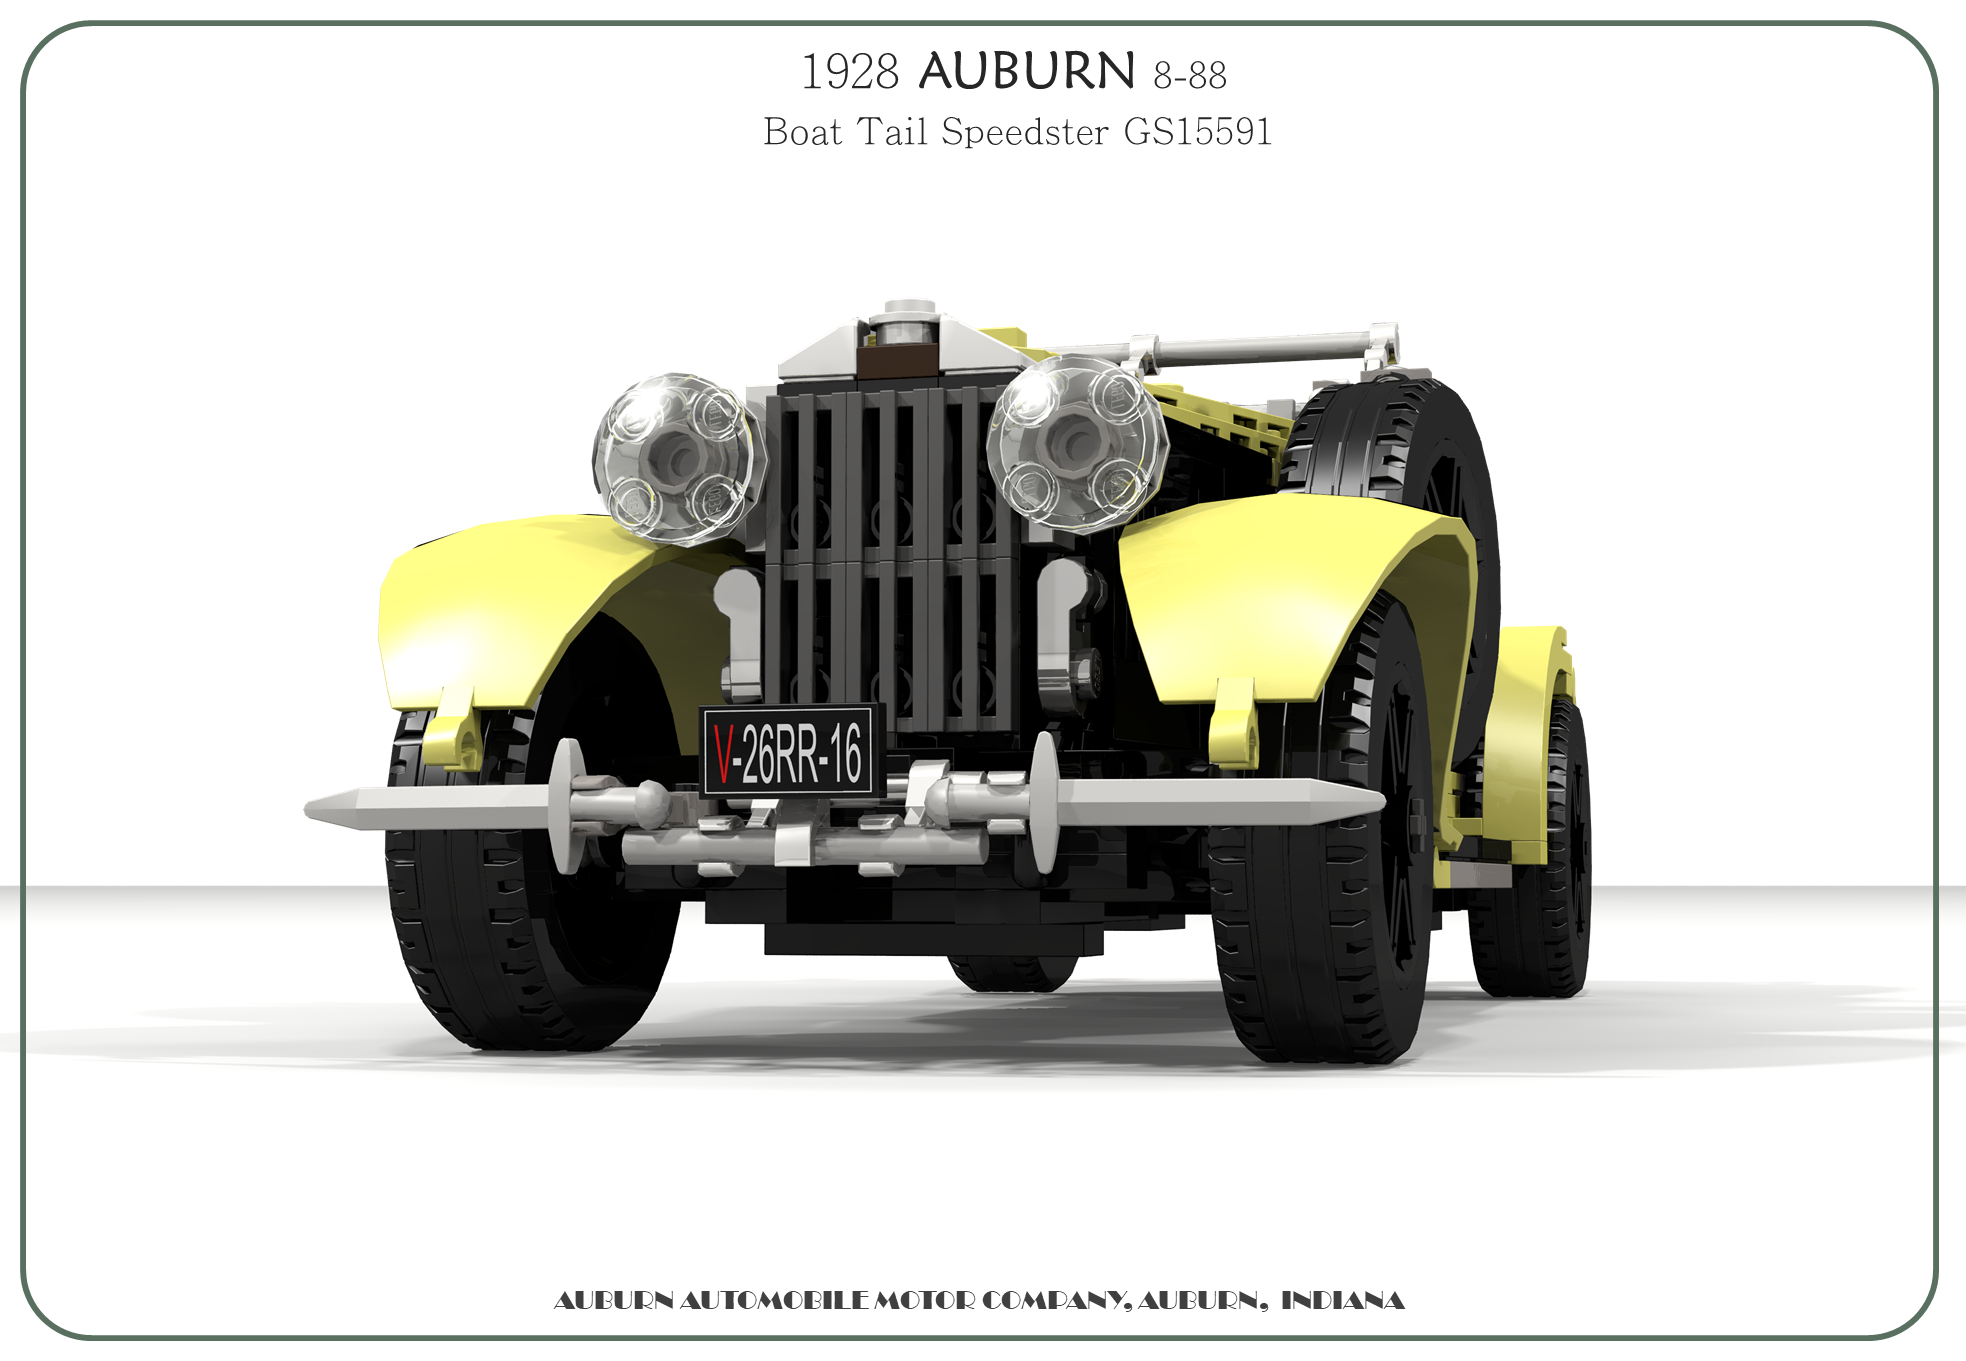 auburn_1928_8-88_boat-tail_speedster_06.png